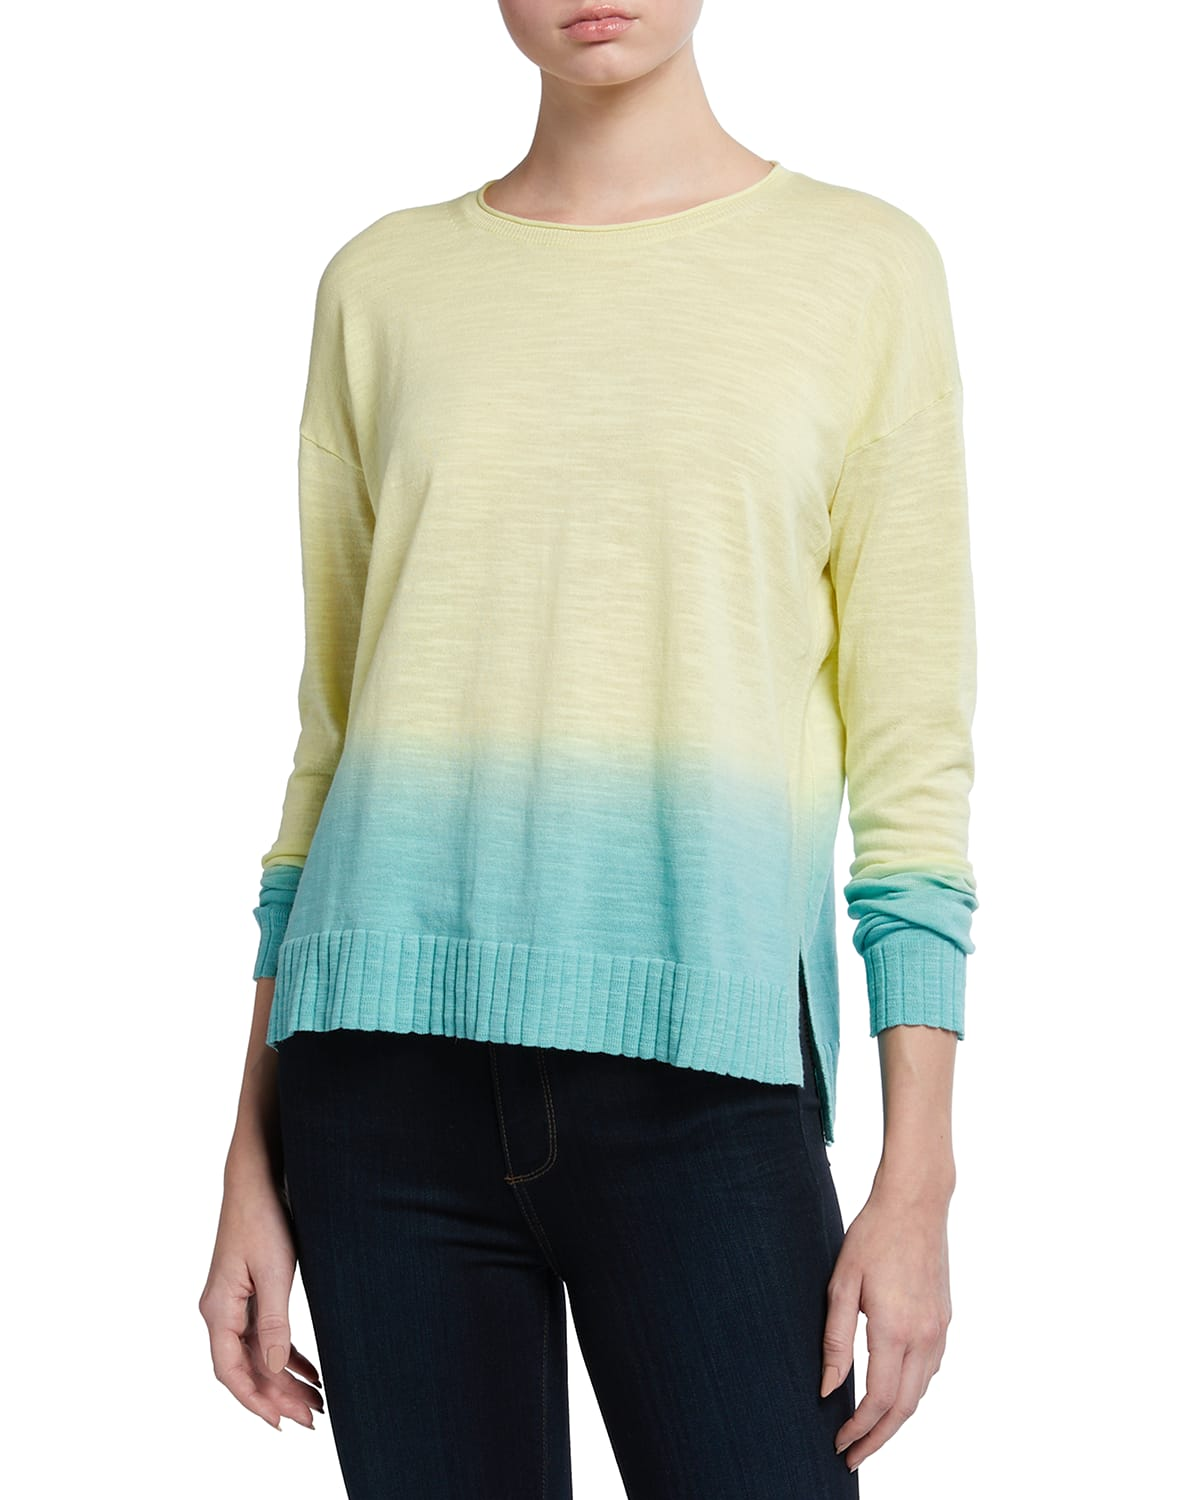 Petite Dipped Ombre Cotton Sweater